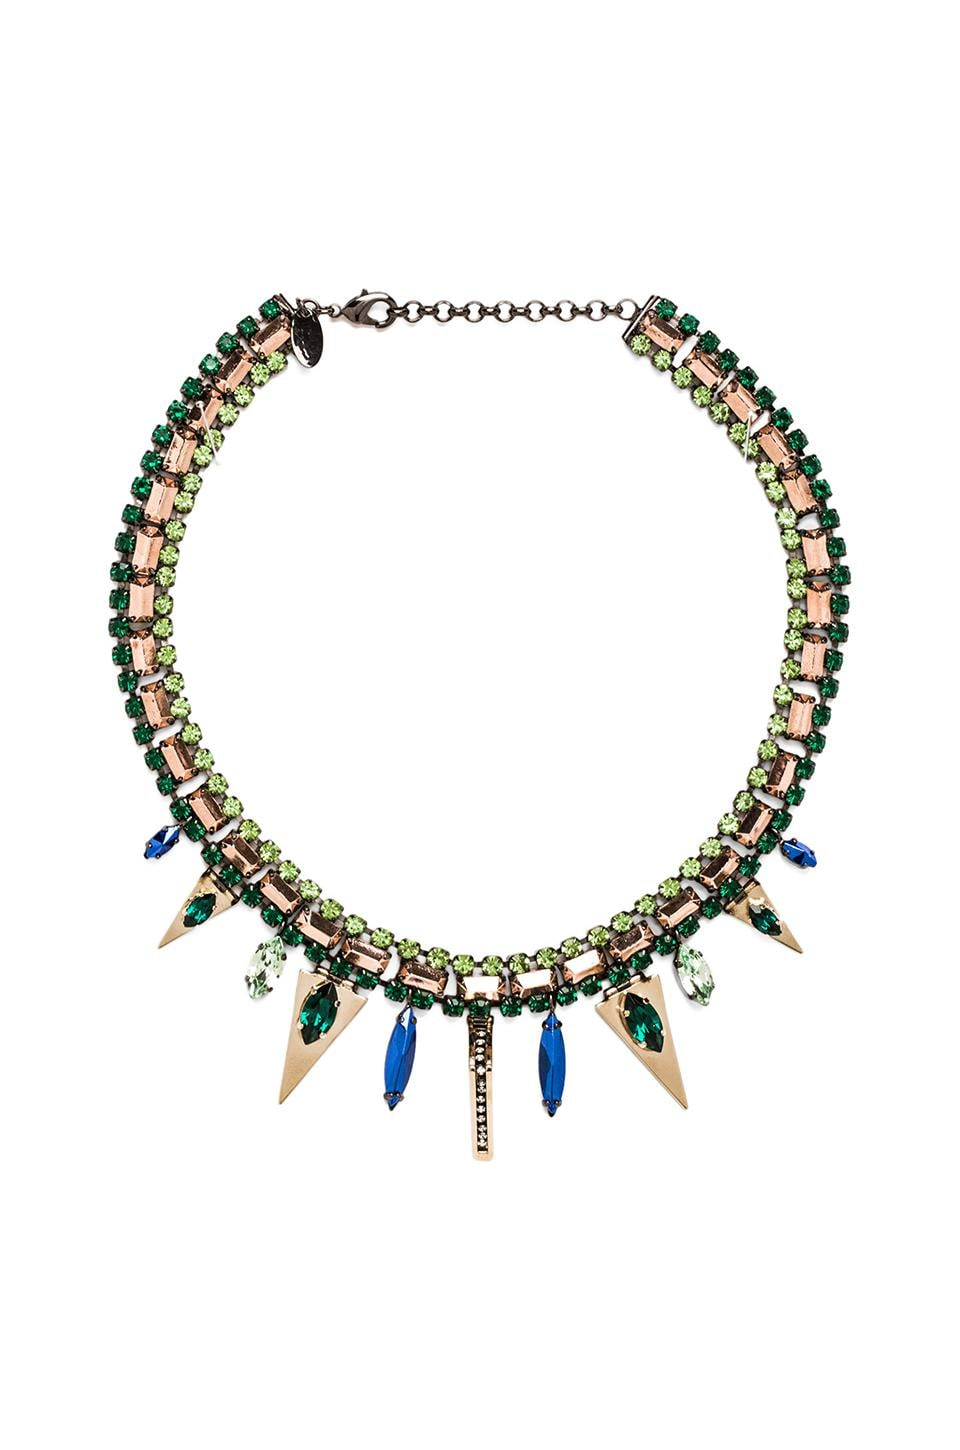 Iosselliani Triangle Collar Necklace in Green Multi